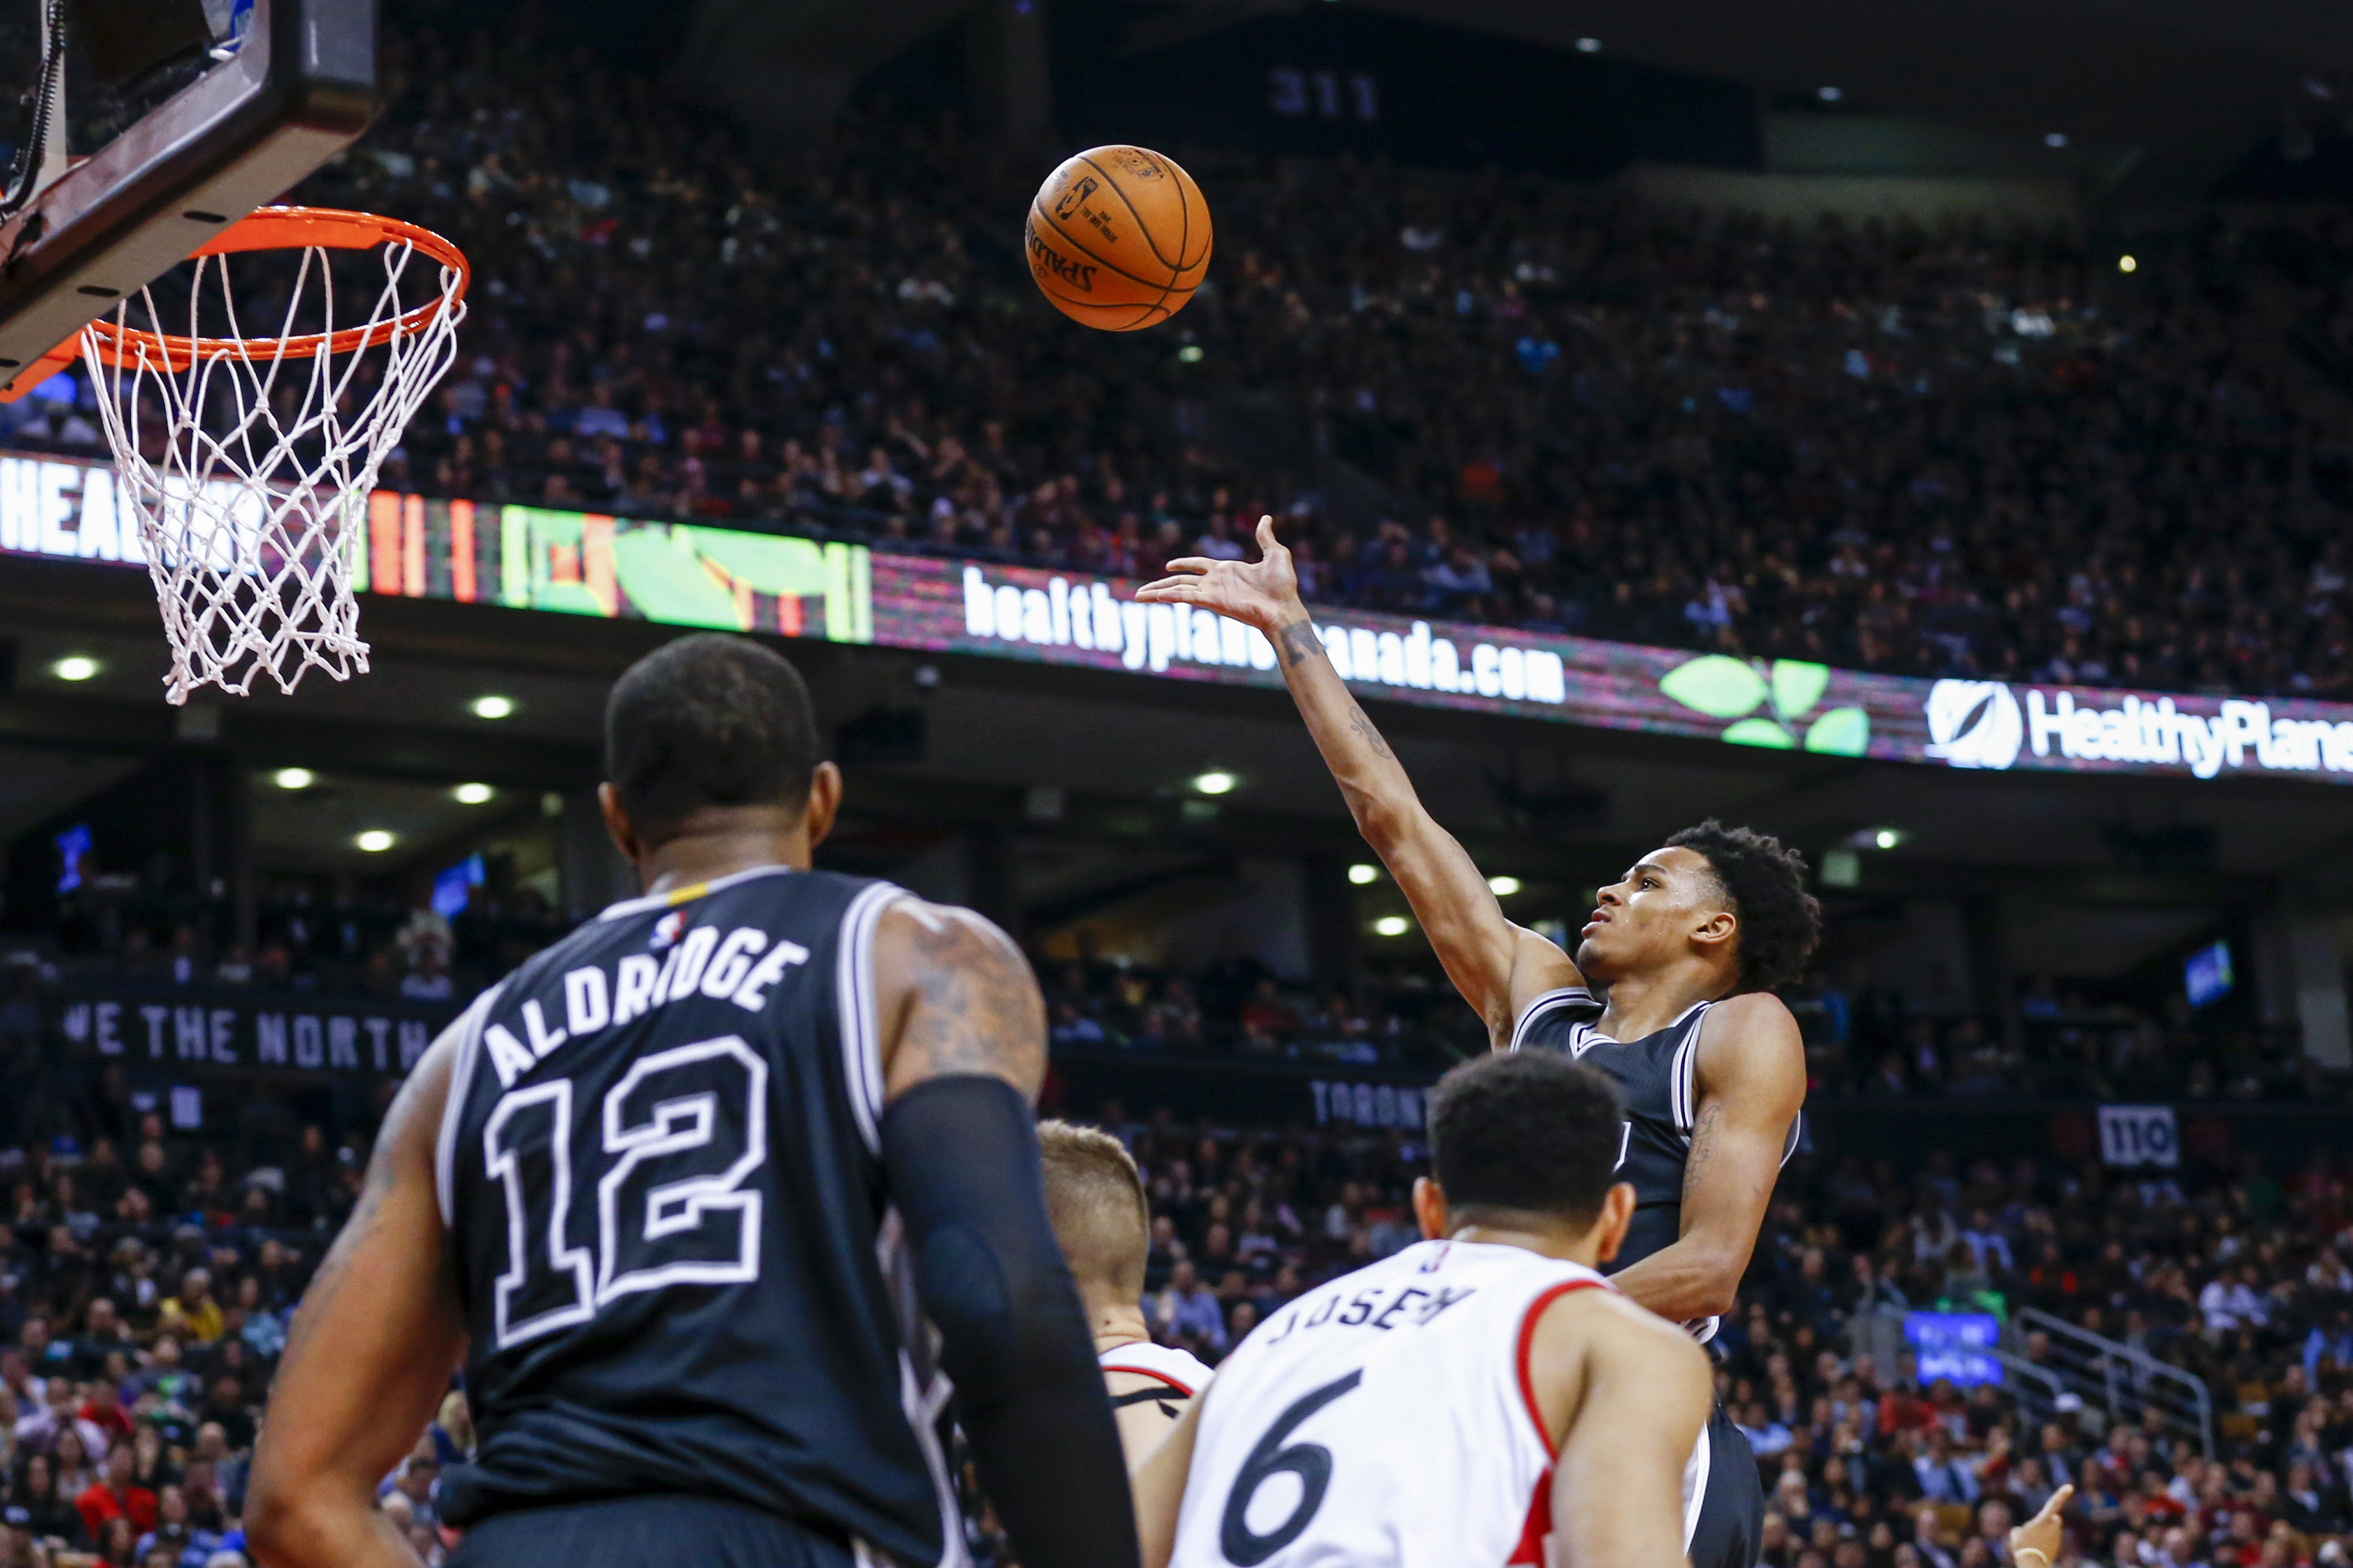 Jan 24, 2017; Toronto, Ontario, CAN; San Antonio Spurs guard Dejounte Murray (5) shoots the ball against the Toronto Raptors in the second half at Air Canada Centre. Spurs defeat the Raptors 108-106. Mandatory Credit: Kevin Sousa-USA TODAY Sports